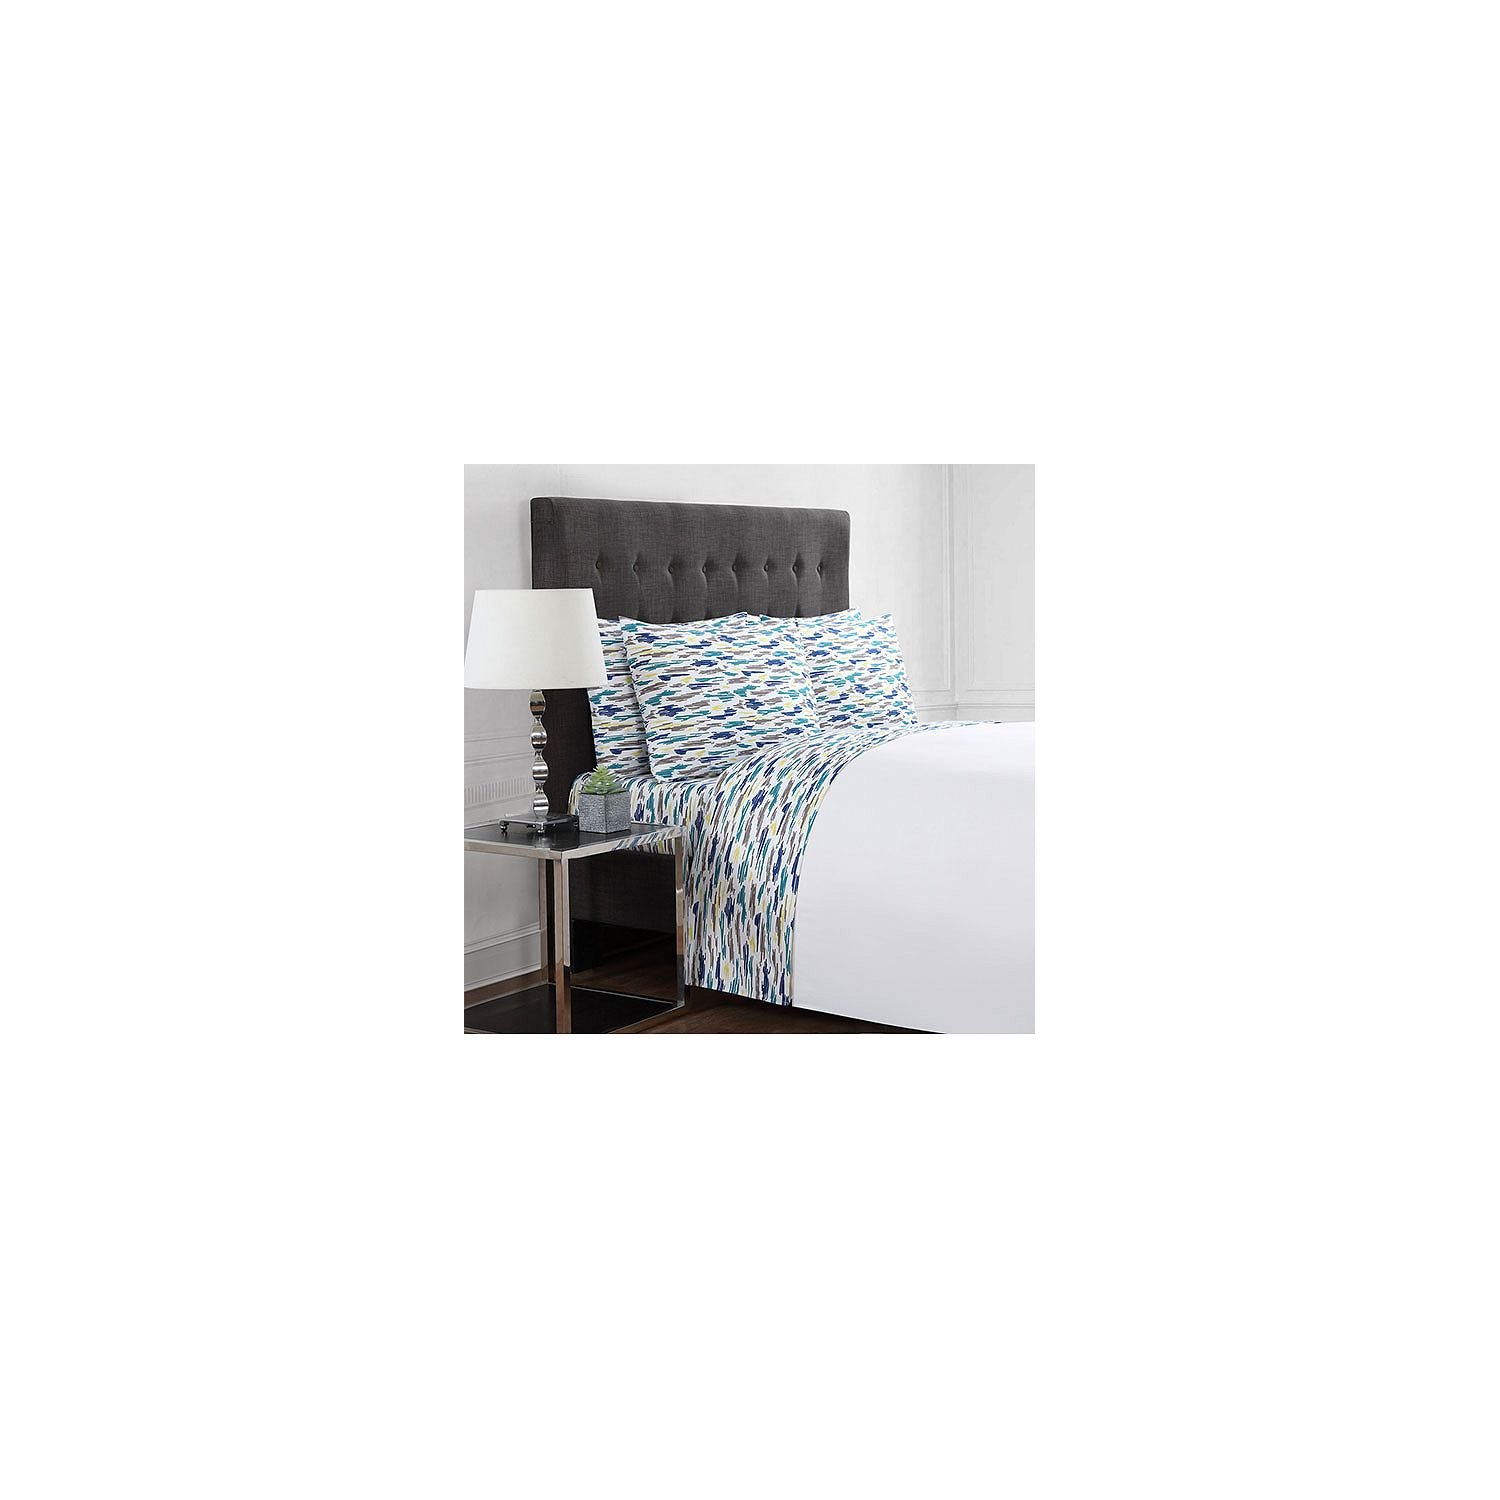 Christian Siriano 12 Piece Cal King Sheet Set Brush Stroke printed, Teal solid by Christian Brand